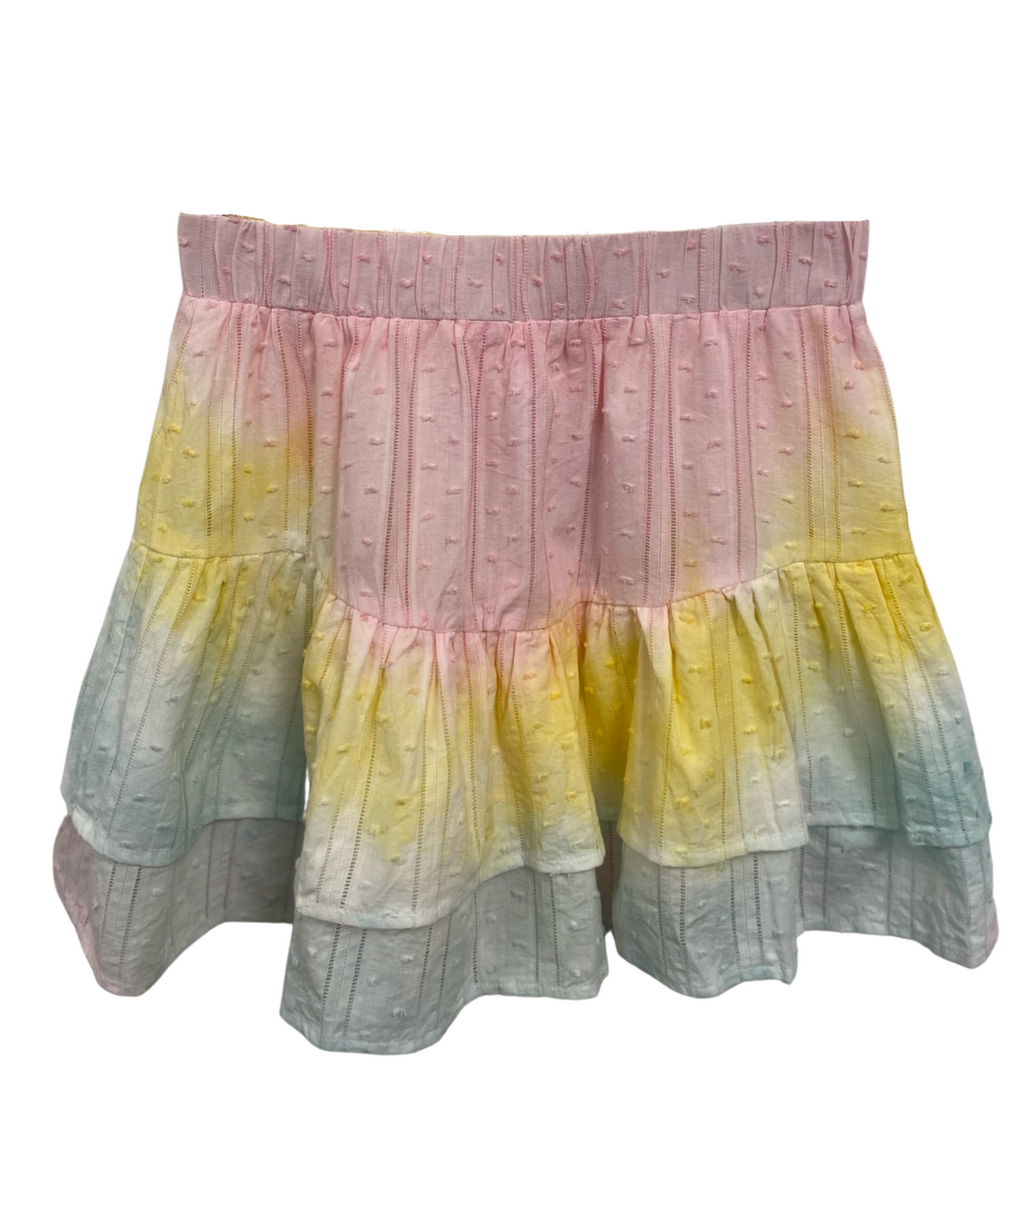 Jill Rainbow Tie Dye Mini Skirt Women